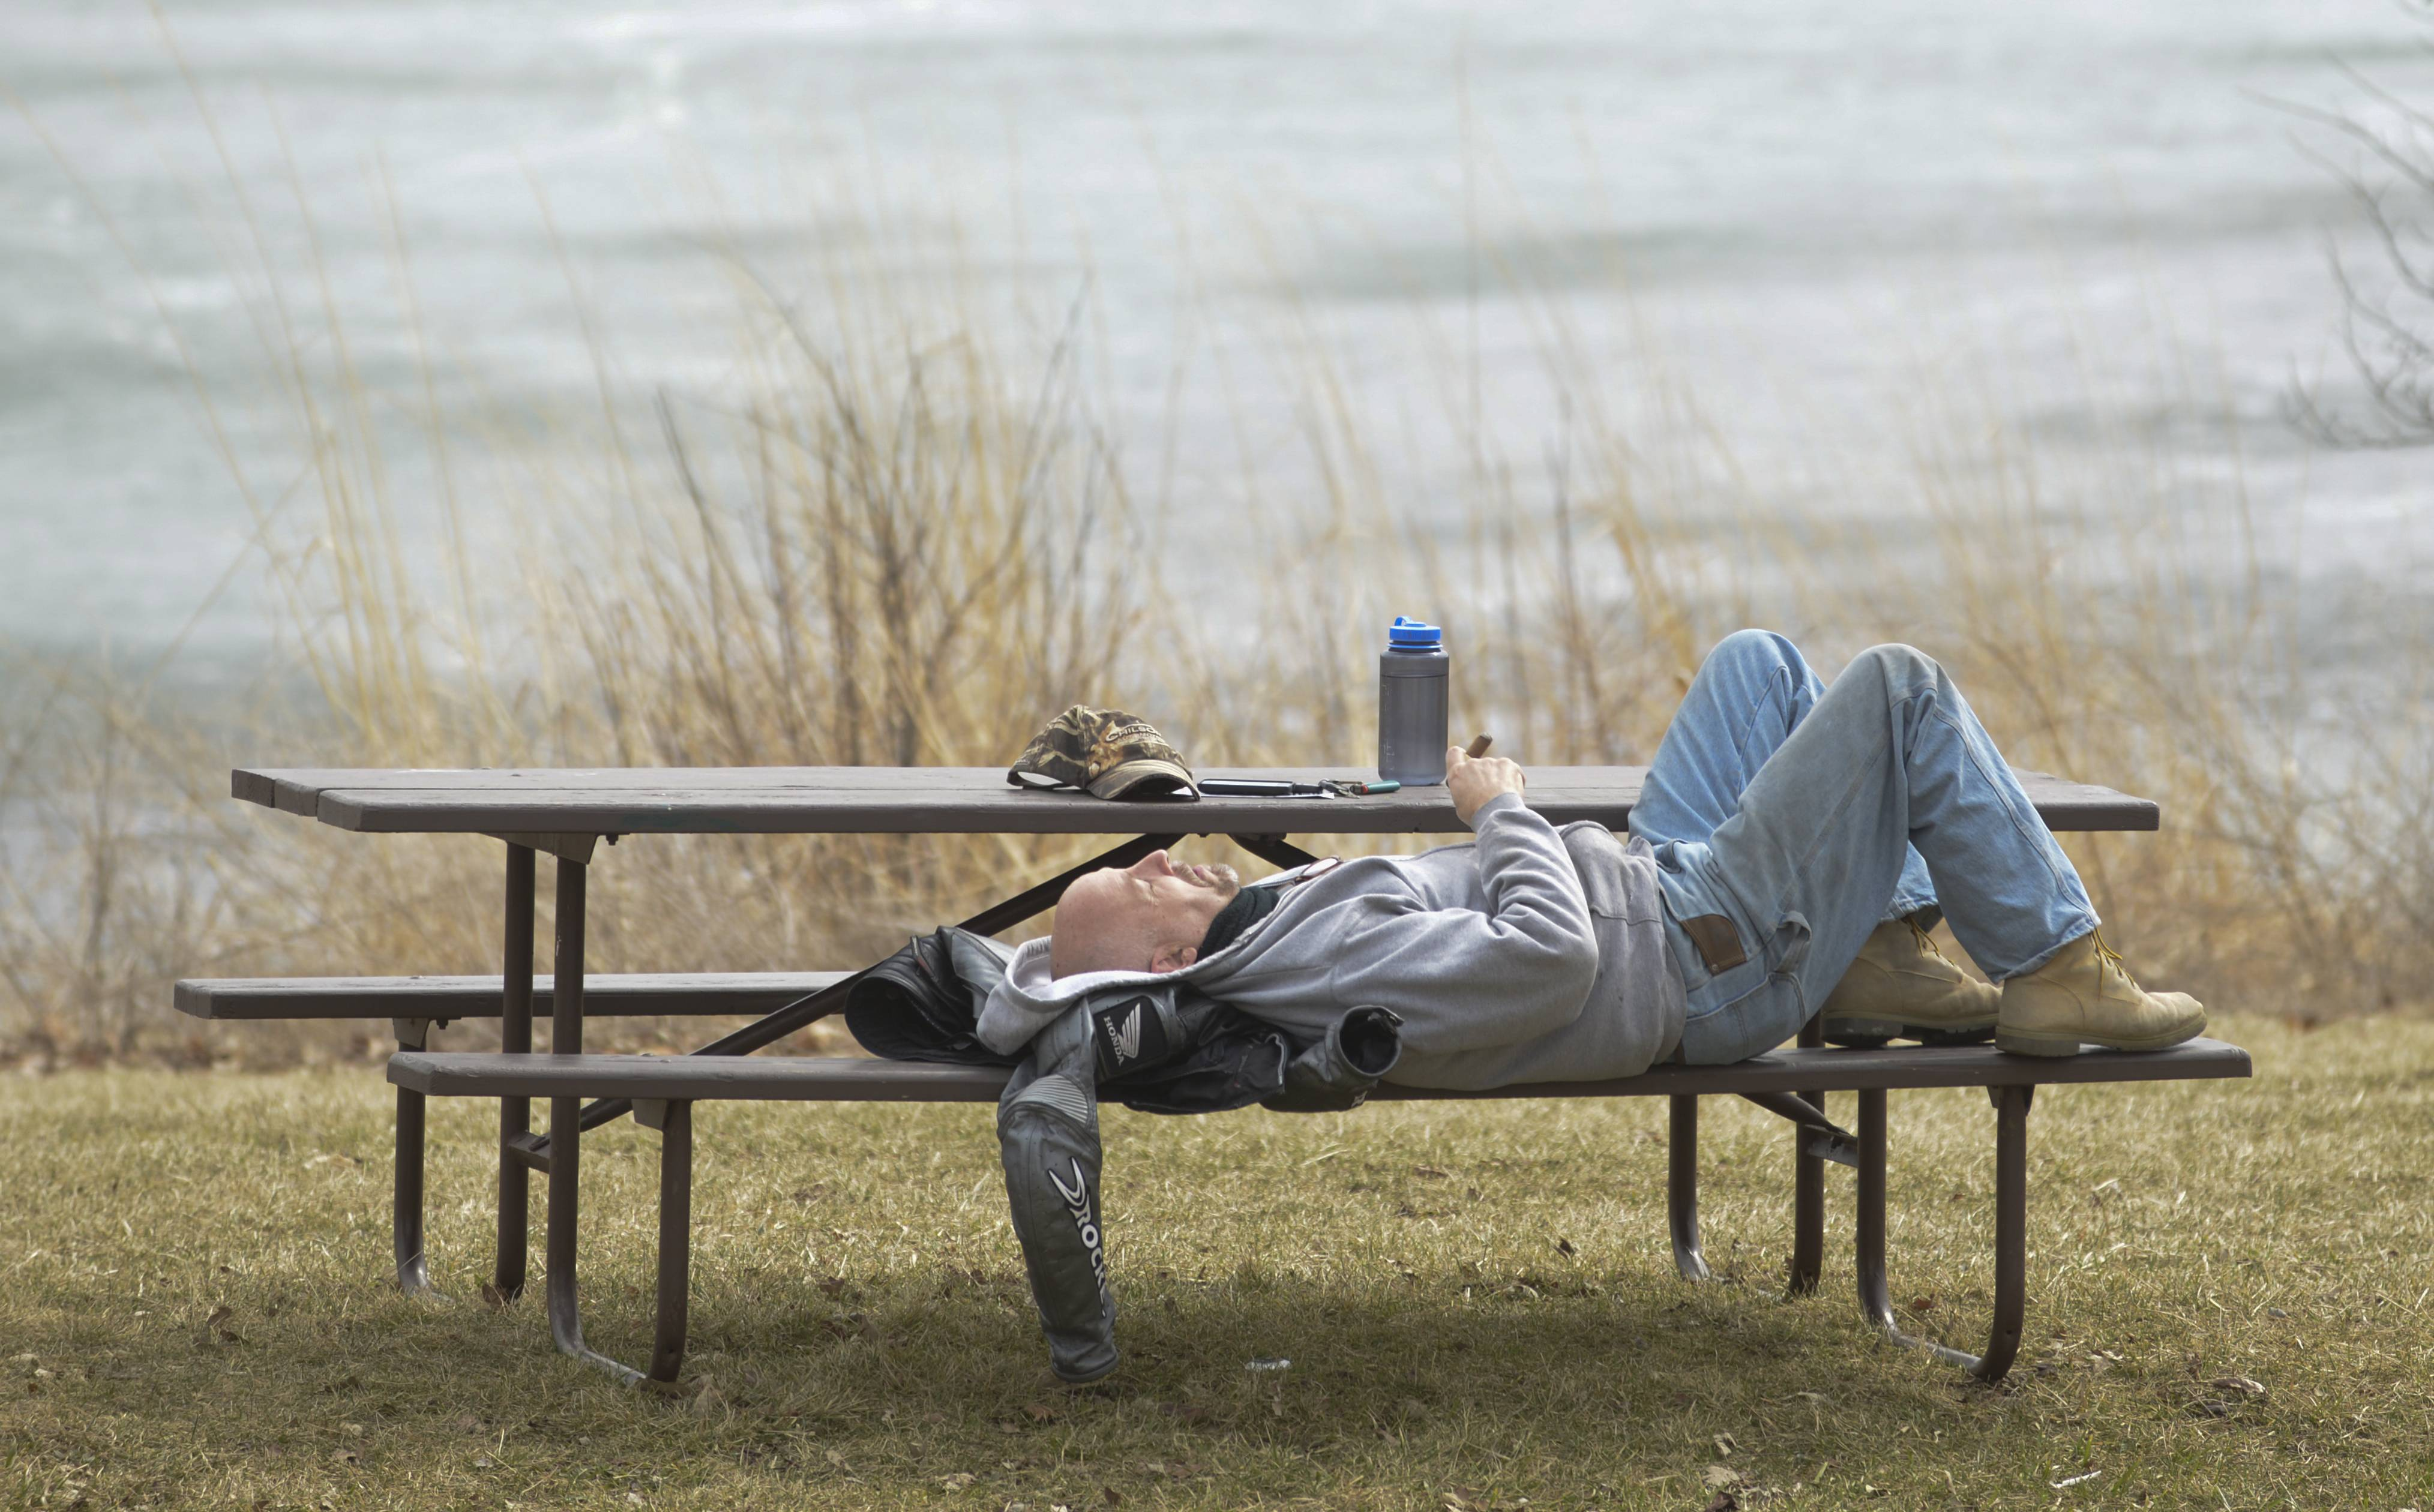 Stu Betts, of Naperville, relaxes on a bench in the Blackwell Forest Preserve Monday afternoon after taking his motorcycle out for a ride. The warm weather prompted many DuPage County residents to head outdoors.